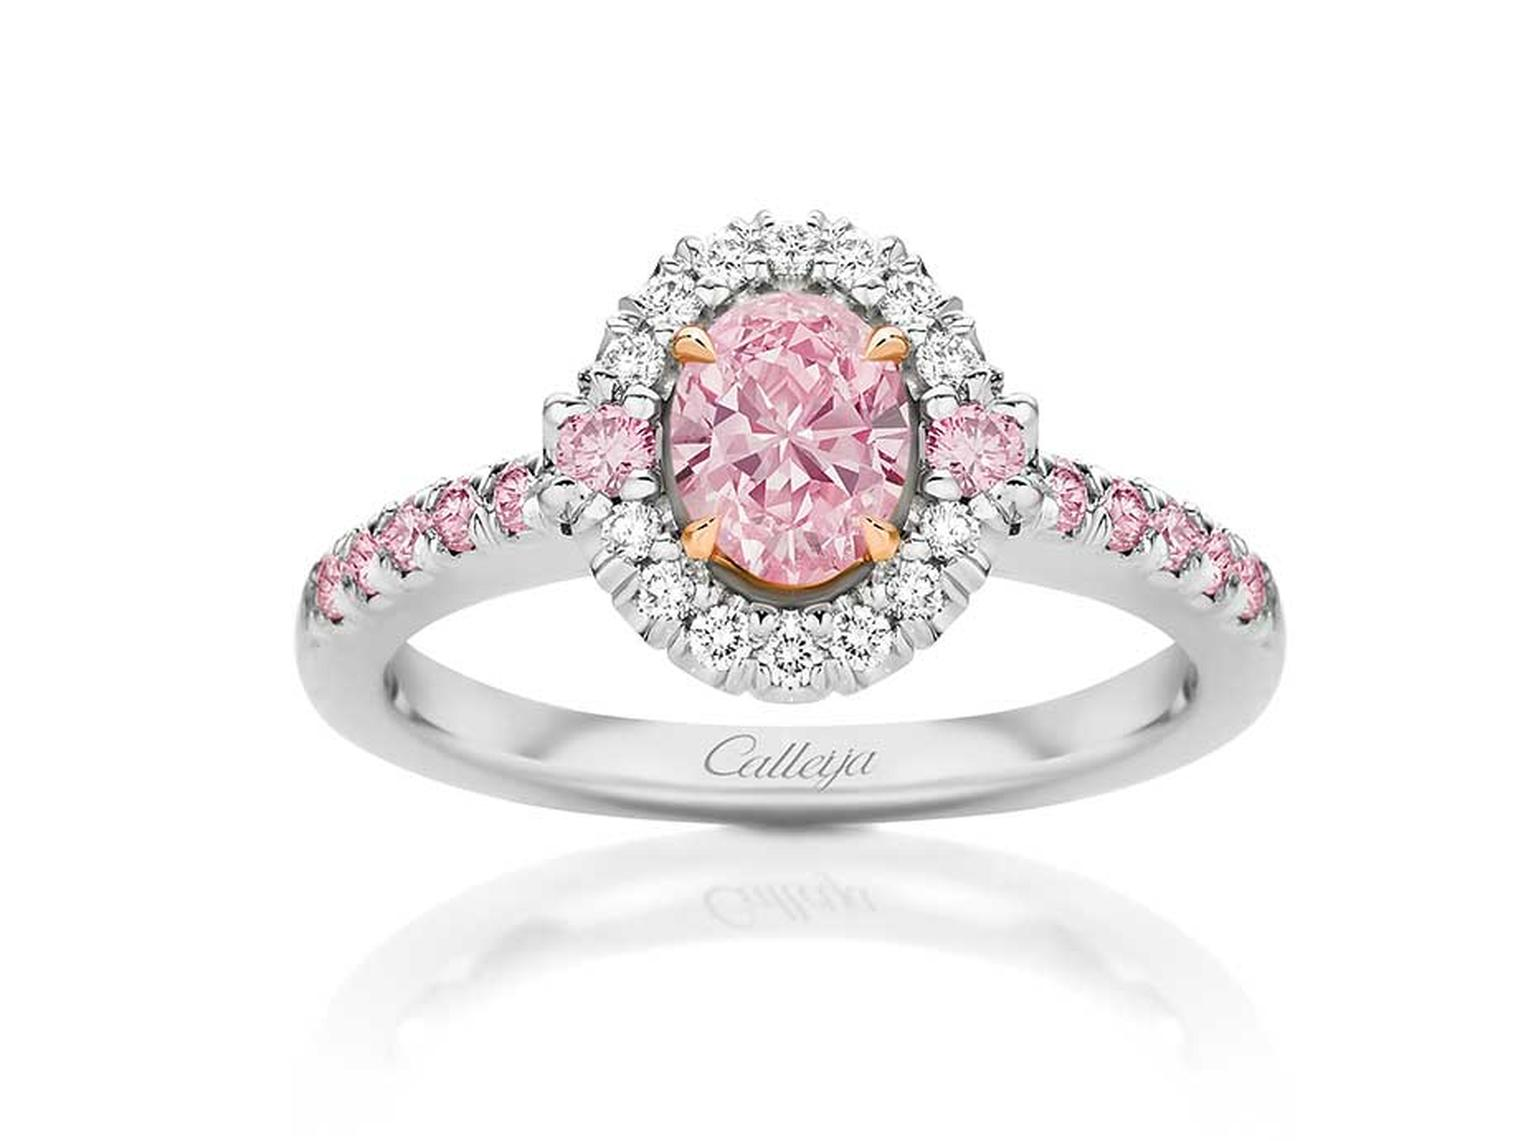 Calleija Elyssa brilliant-cut Argyle pink diamond ring surrounded by white and pink pavé diamonds.